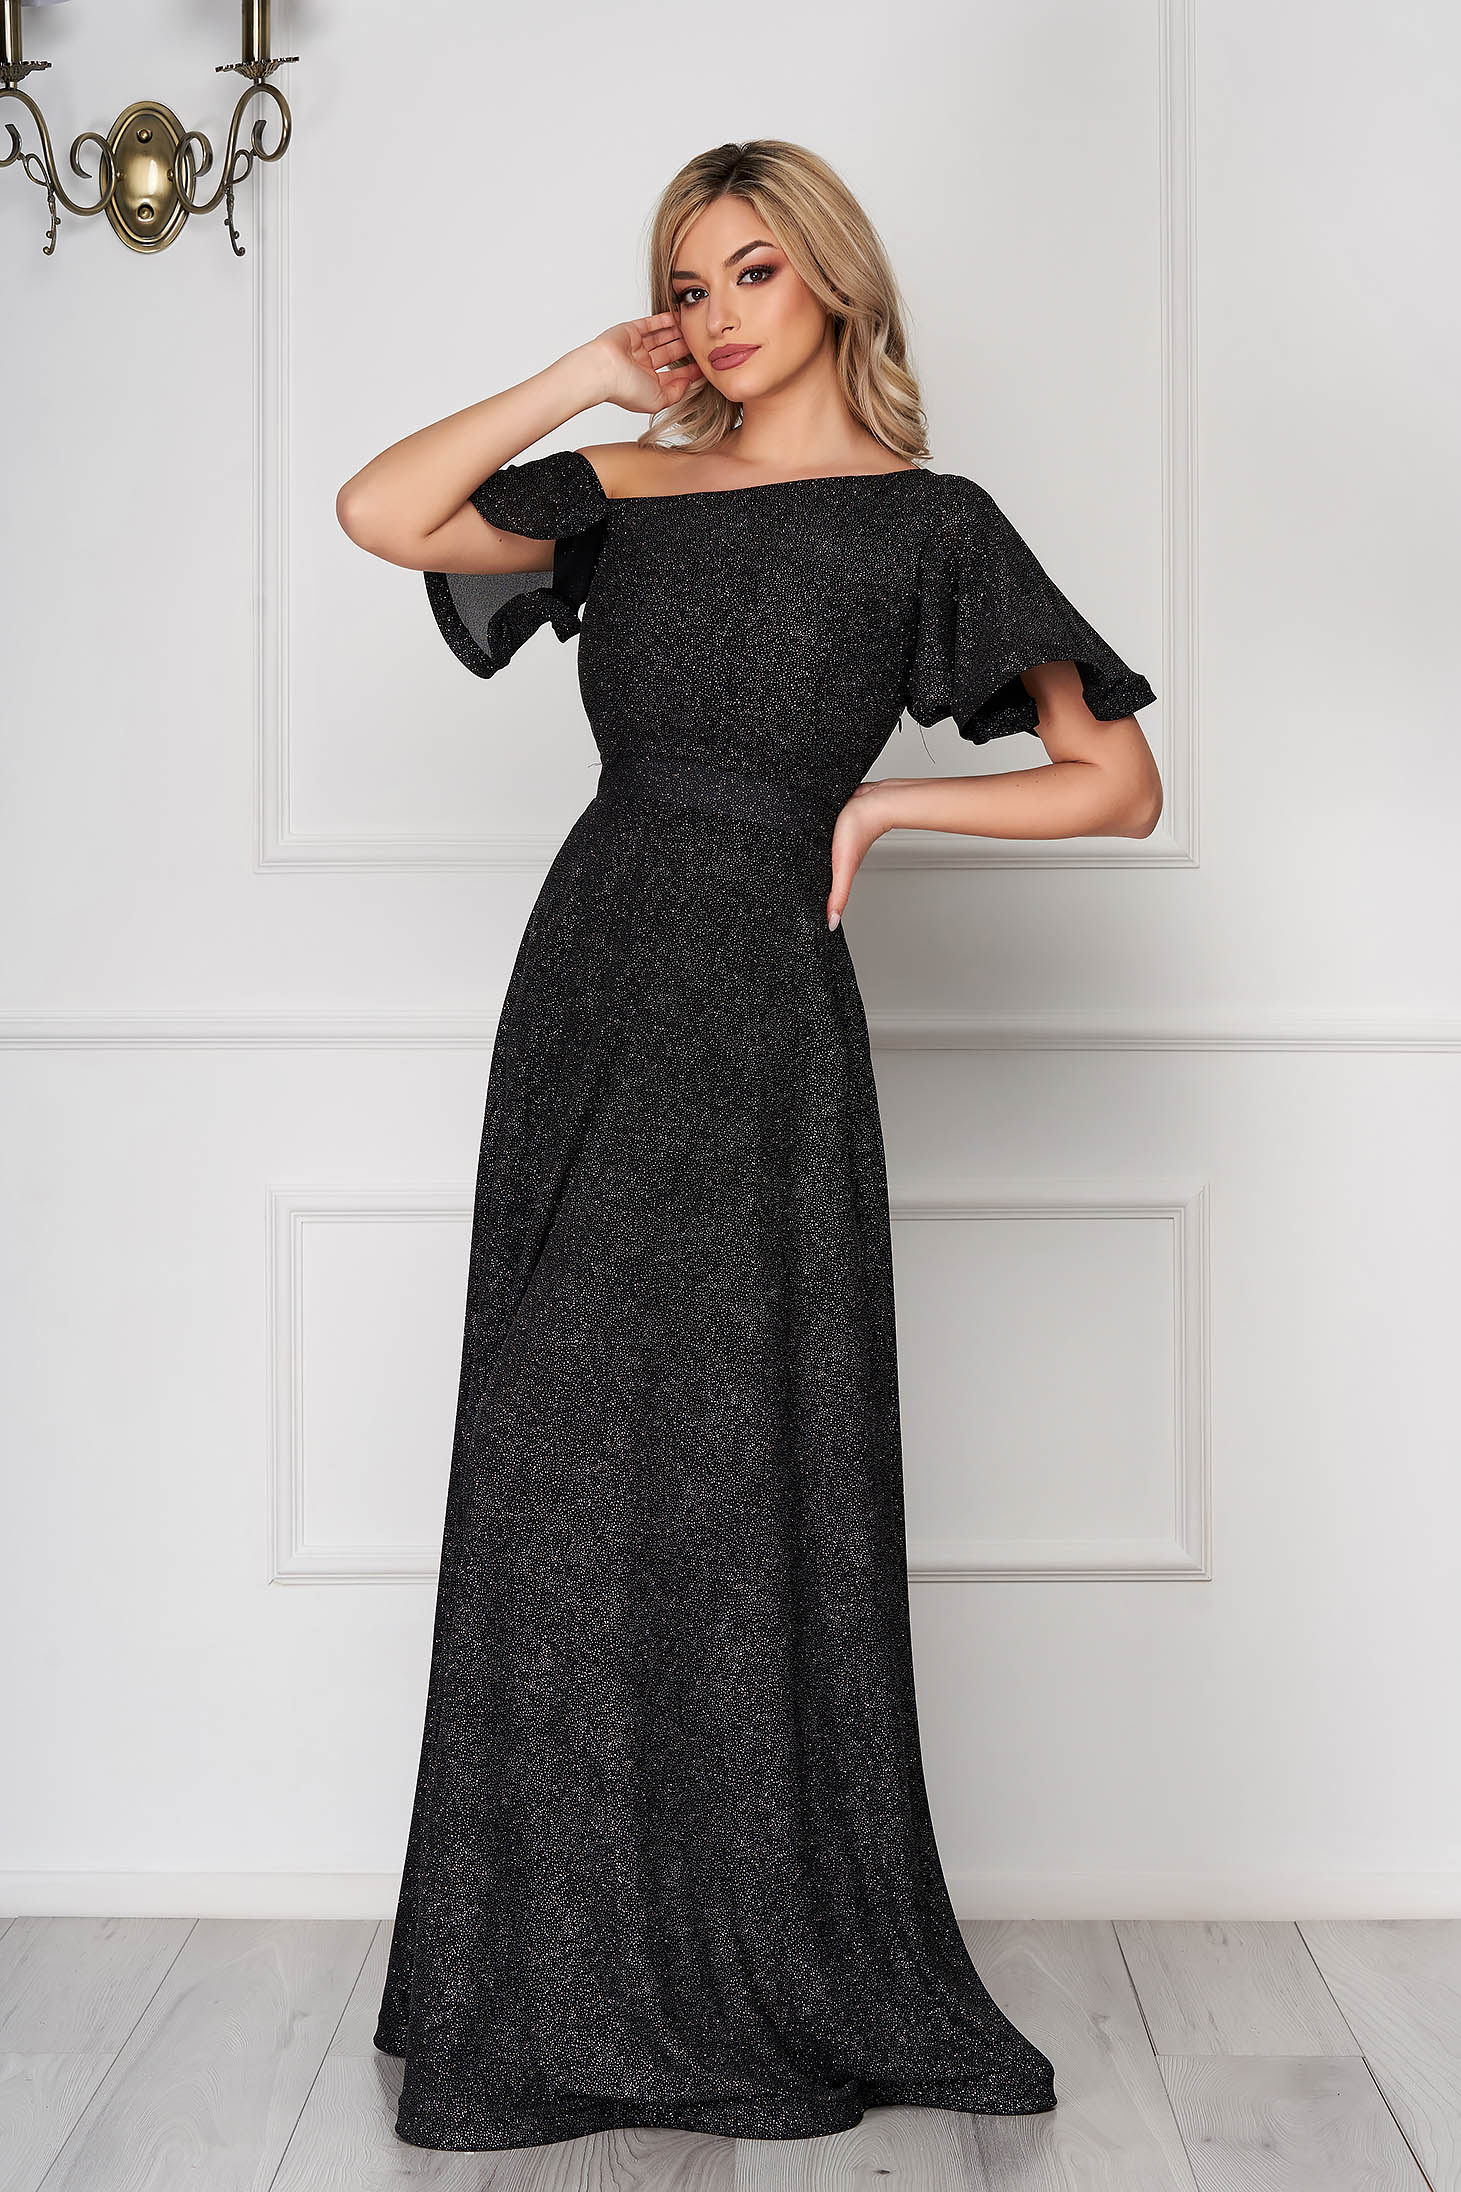 Dress StarShinerS black long occasional cloche from veil fabric one shoulder